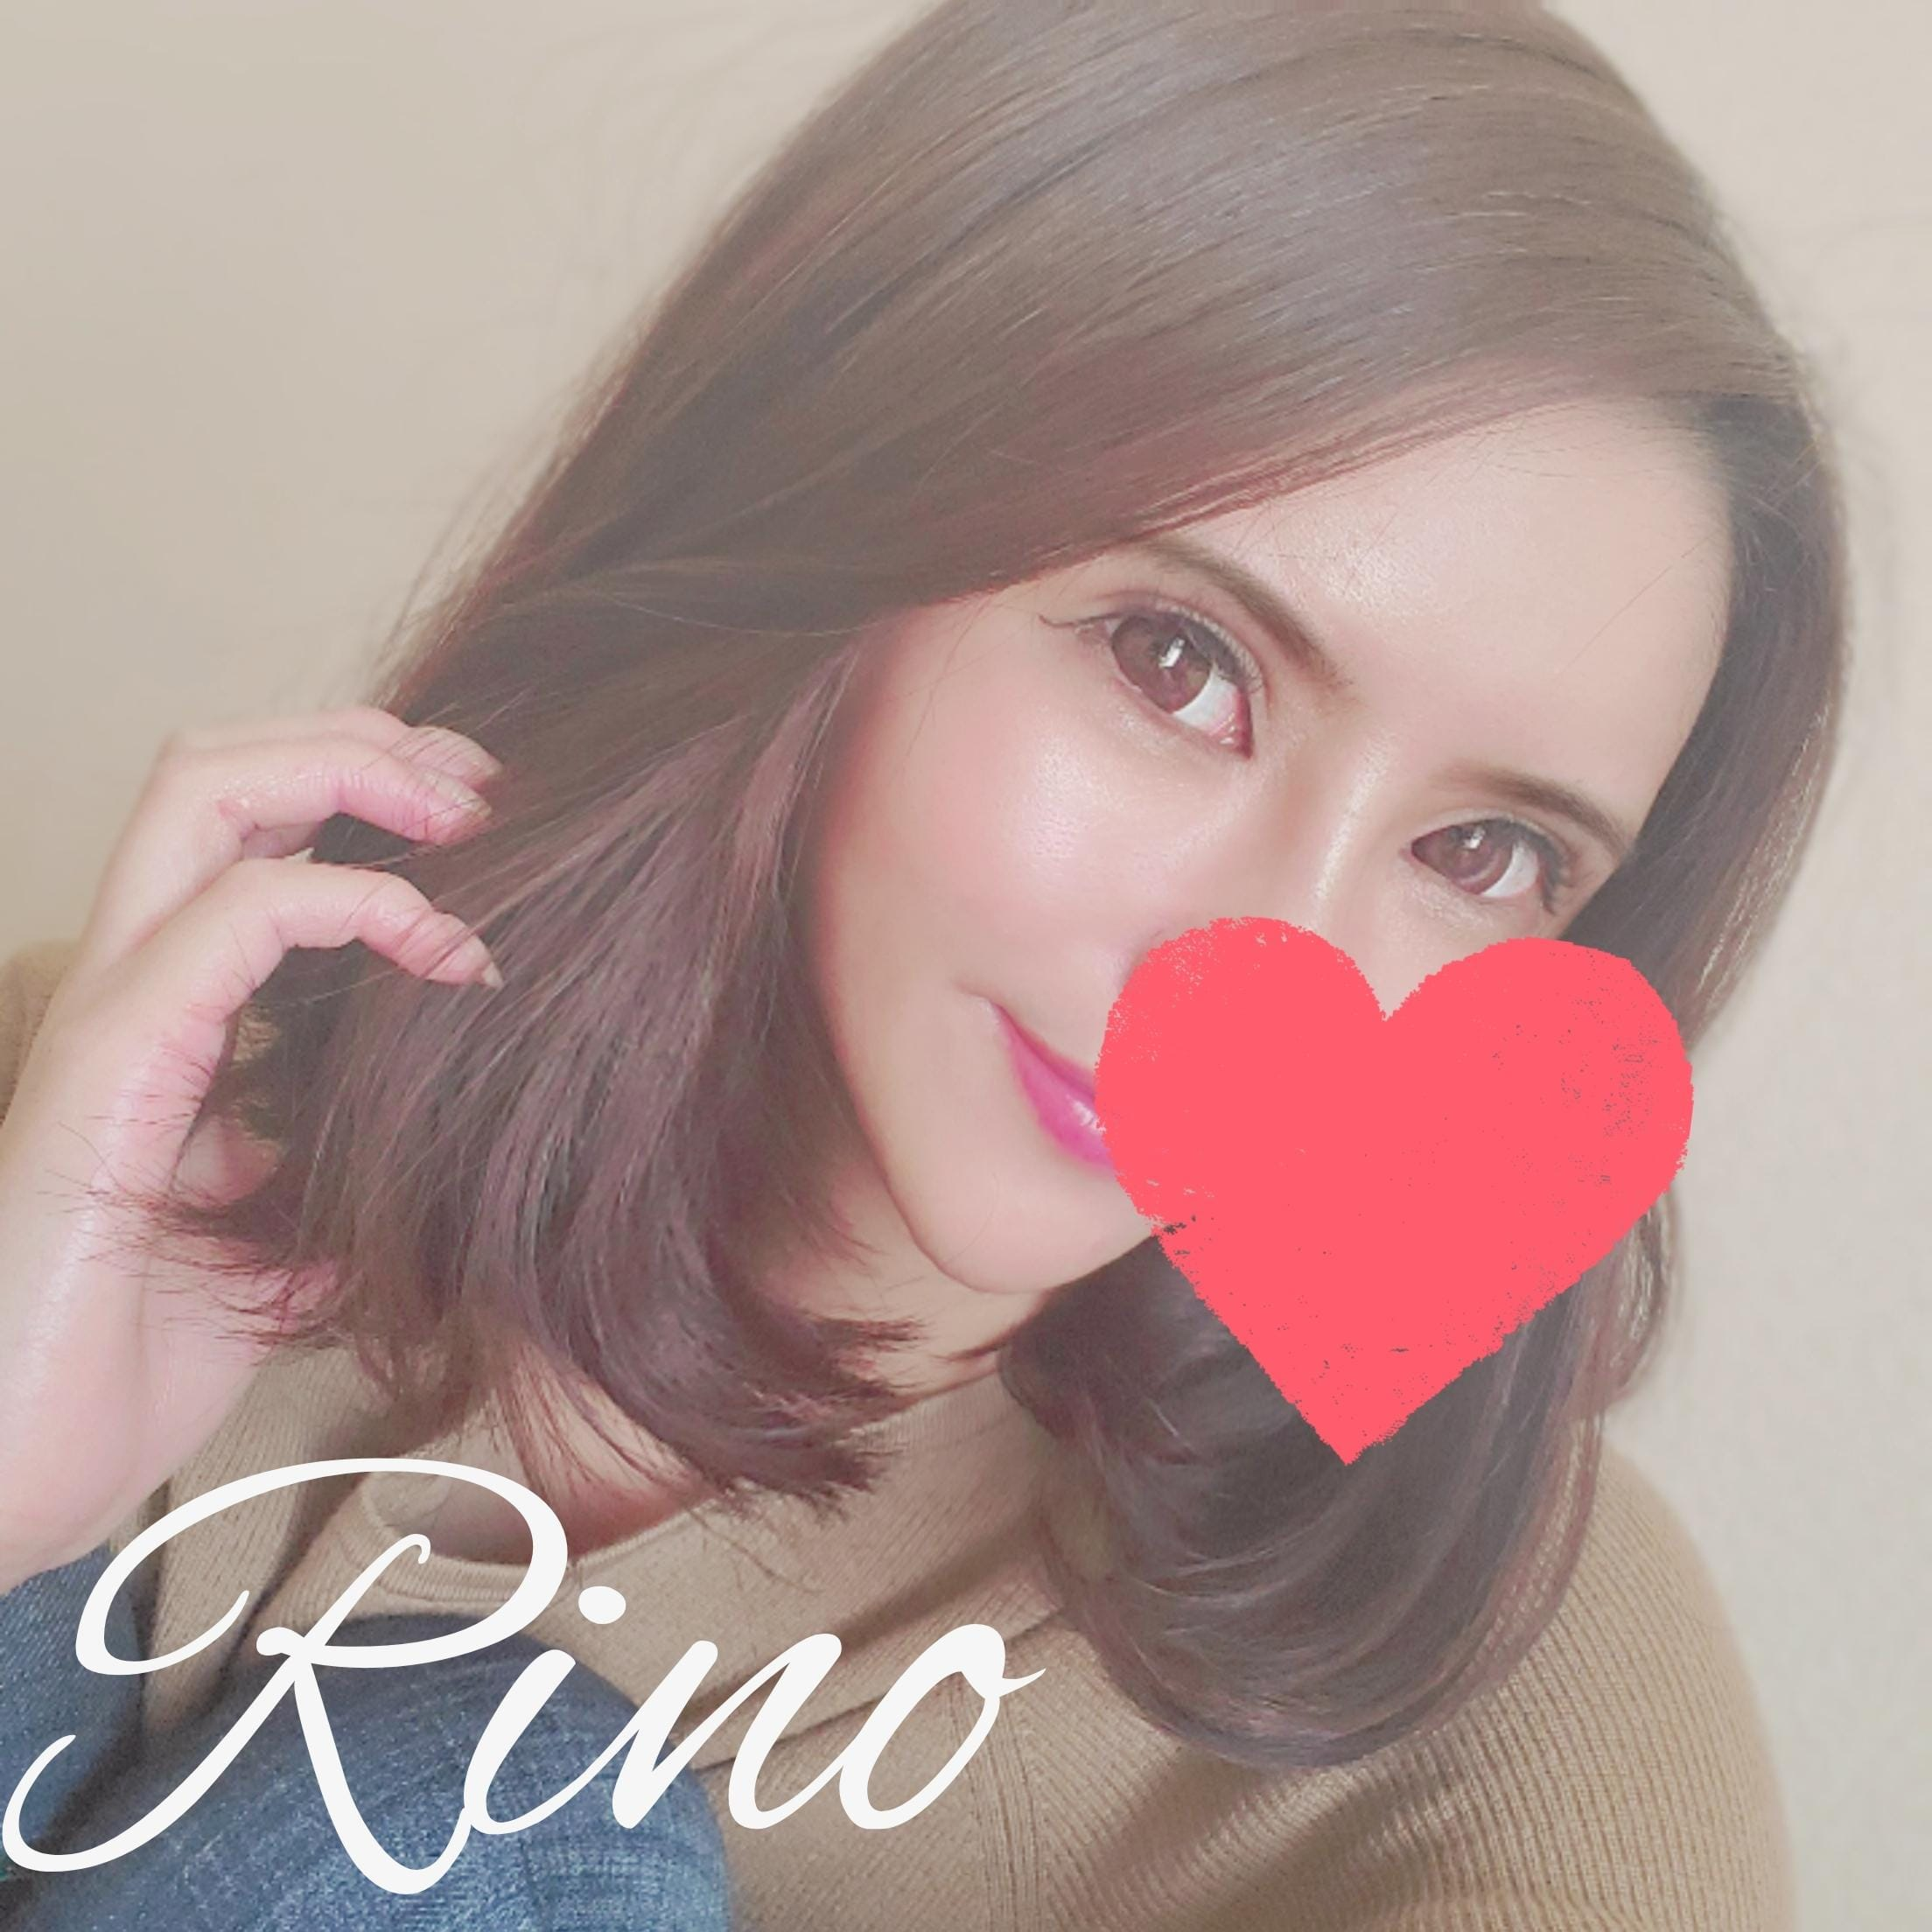 「thank you♡」11/14(11/14) 16:28 | りのの写メ・風俗動画